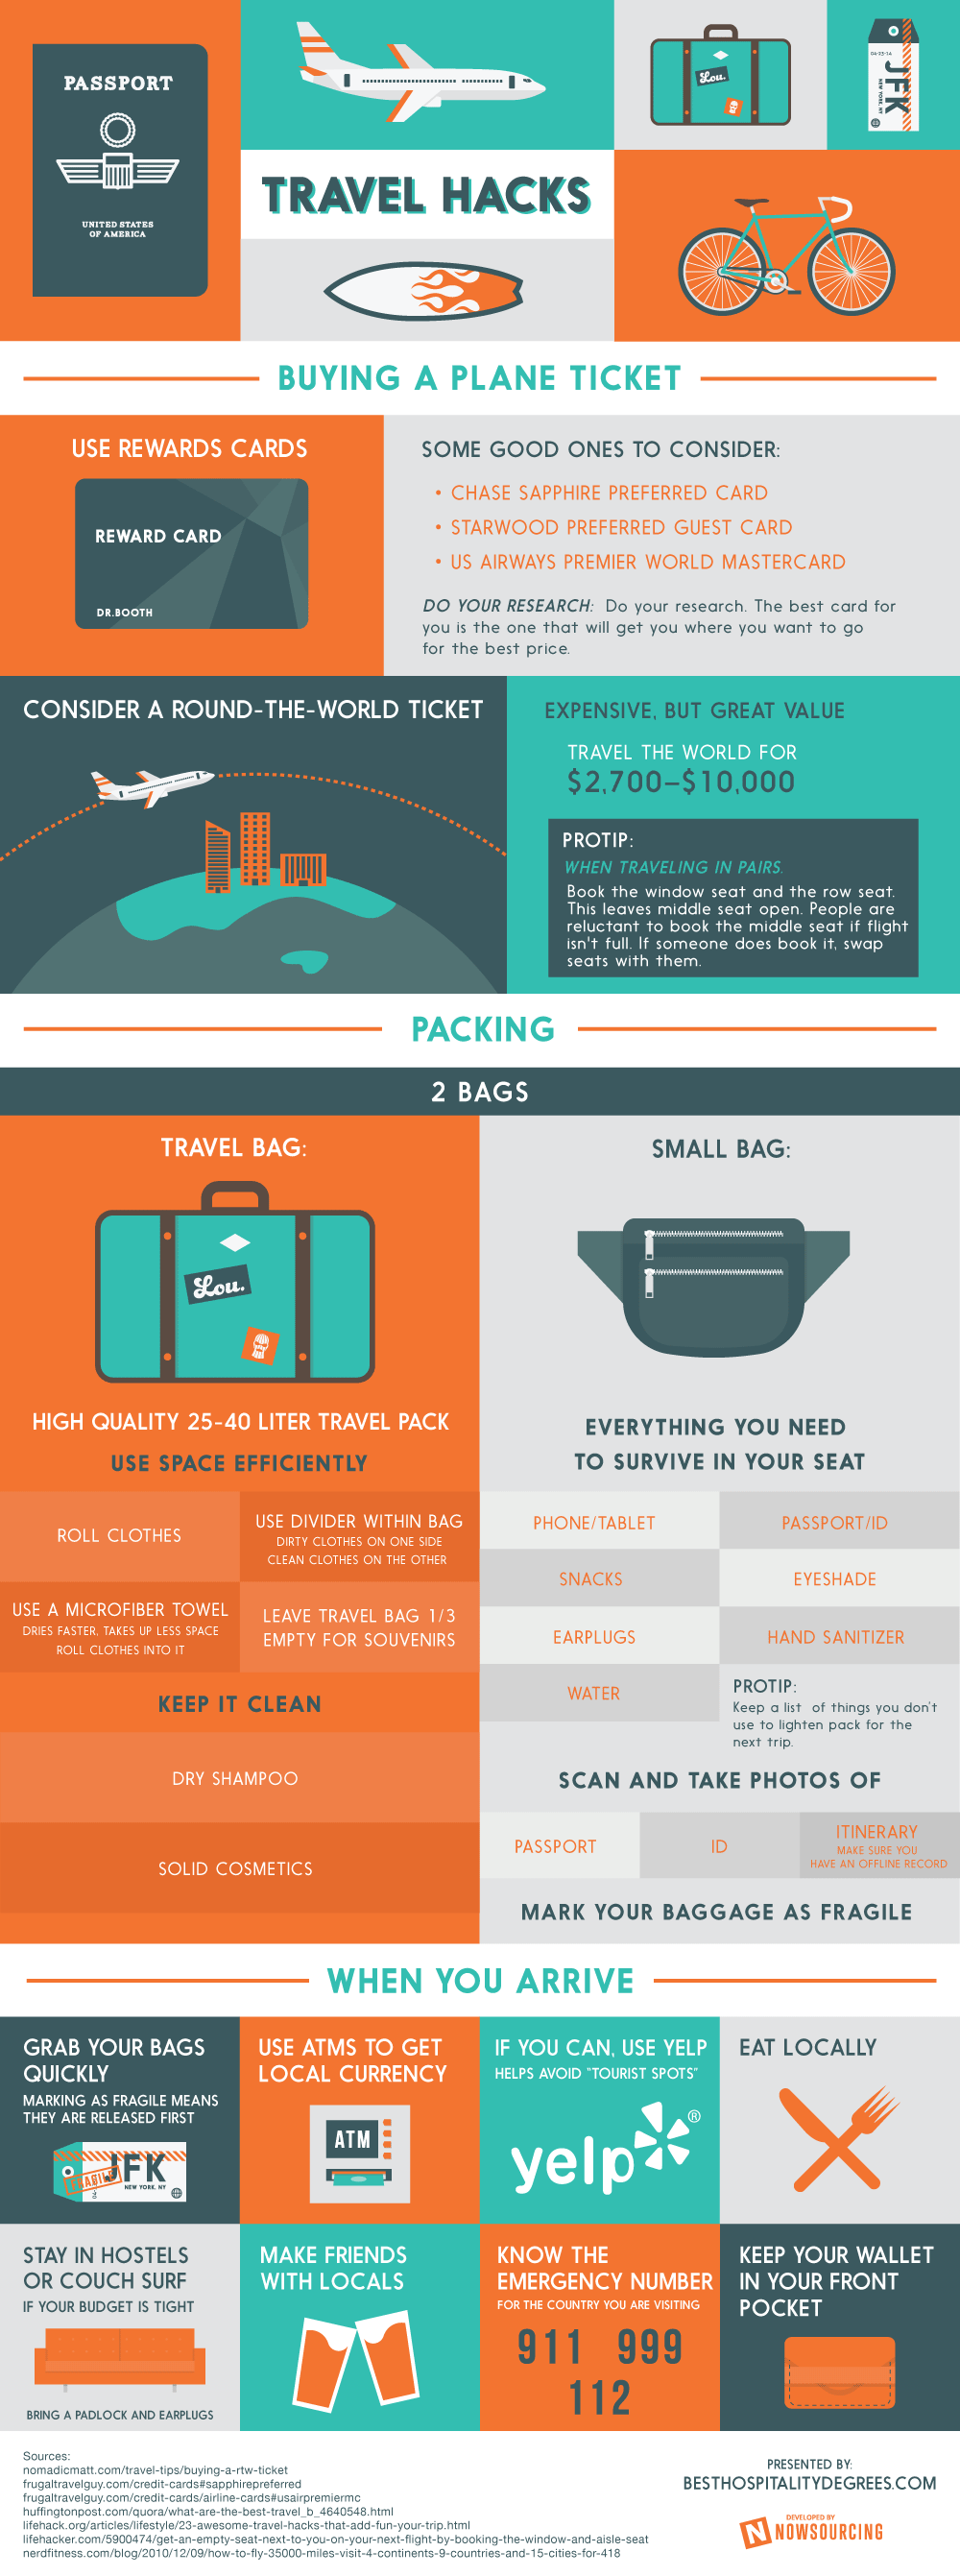 infographic-travel-hacks